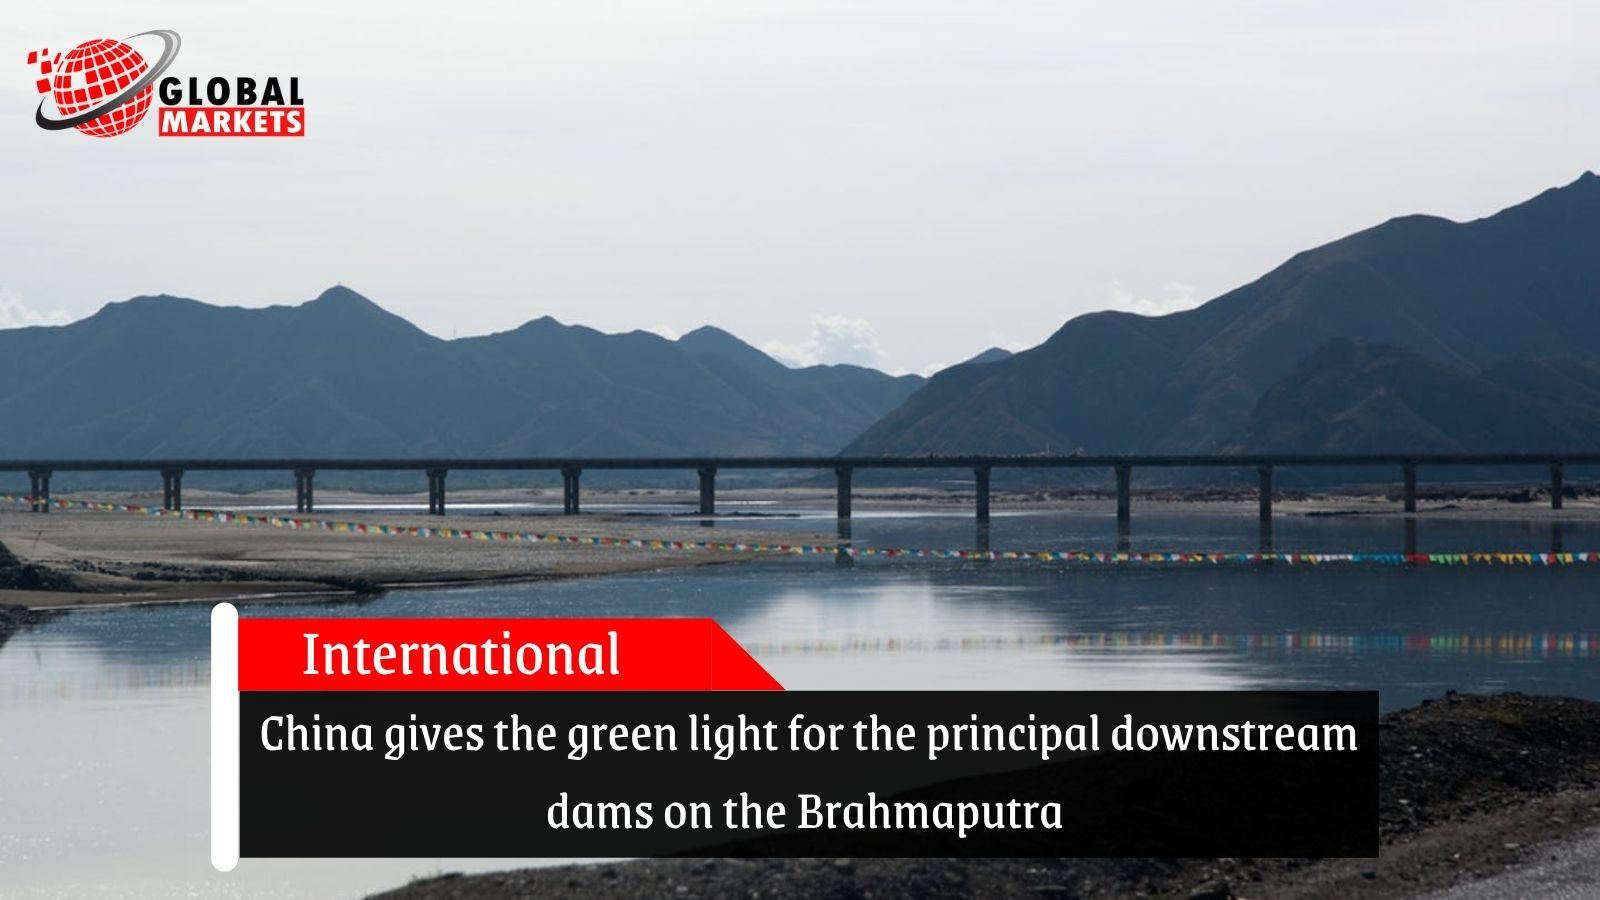 China gives the green light for the principal downstream dams on the Brahmaputra